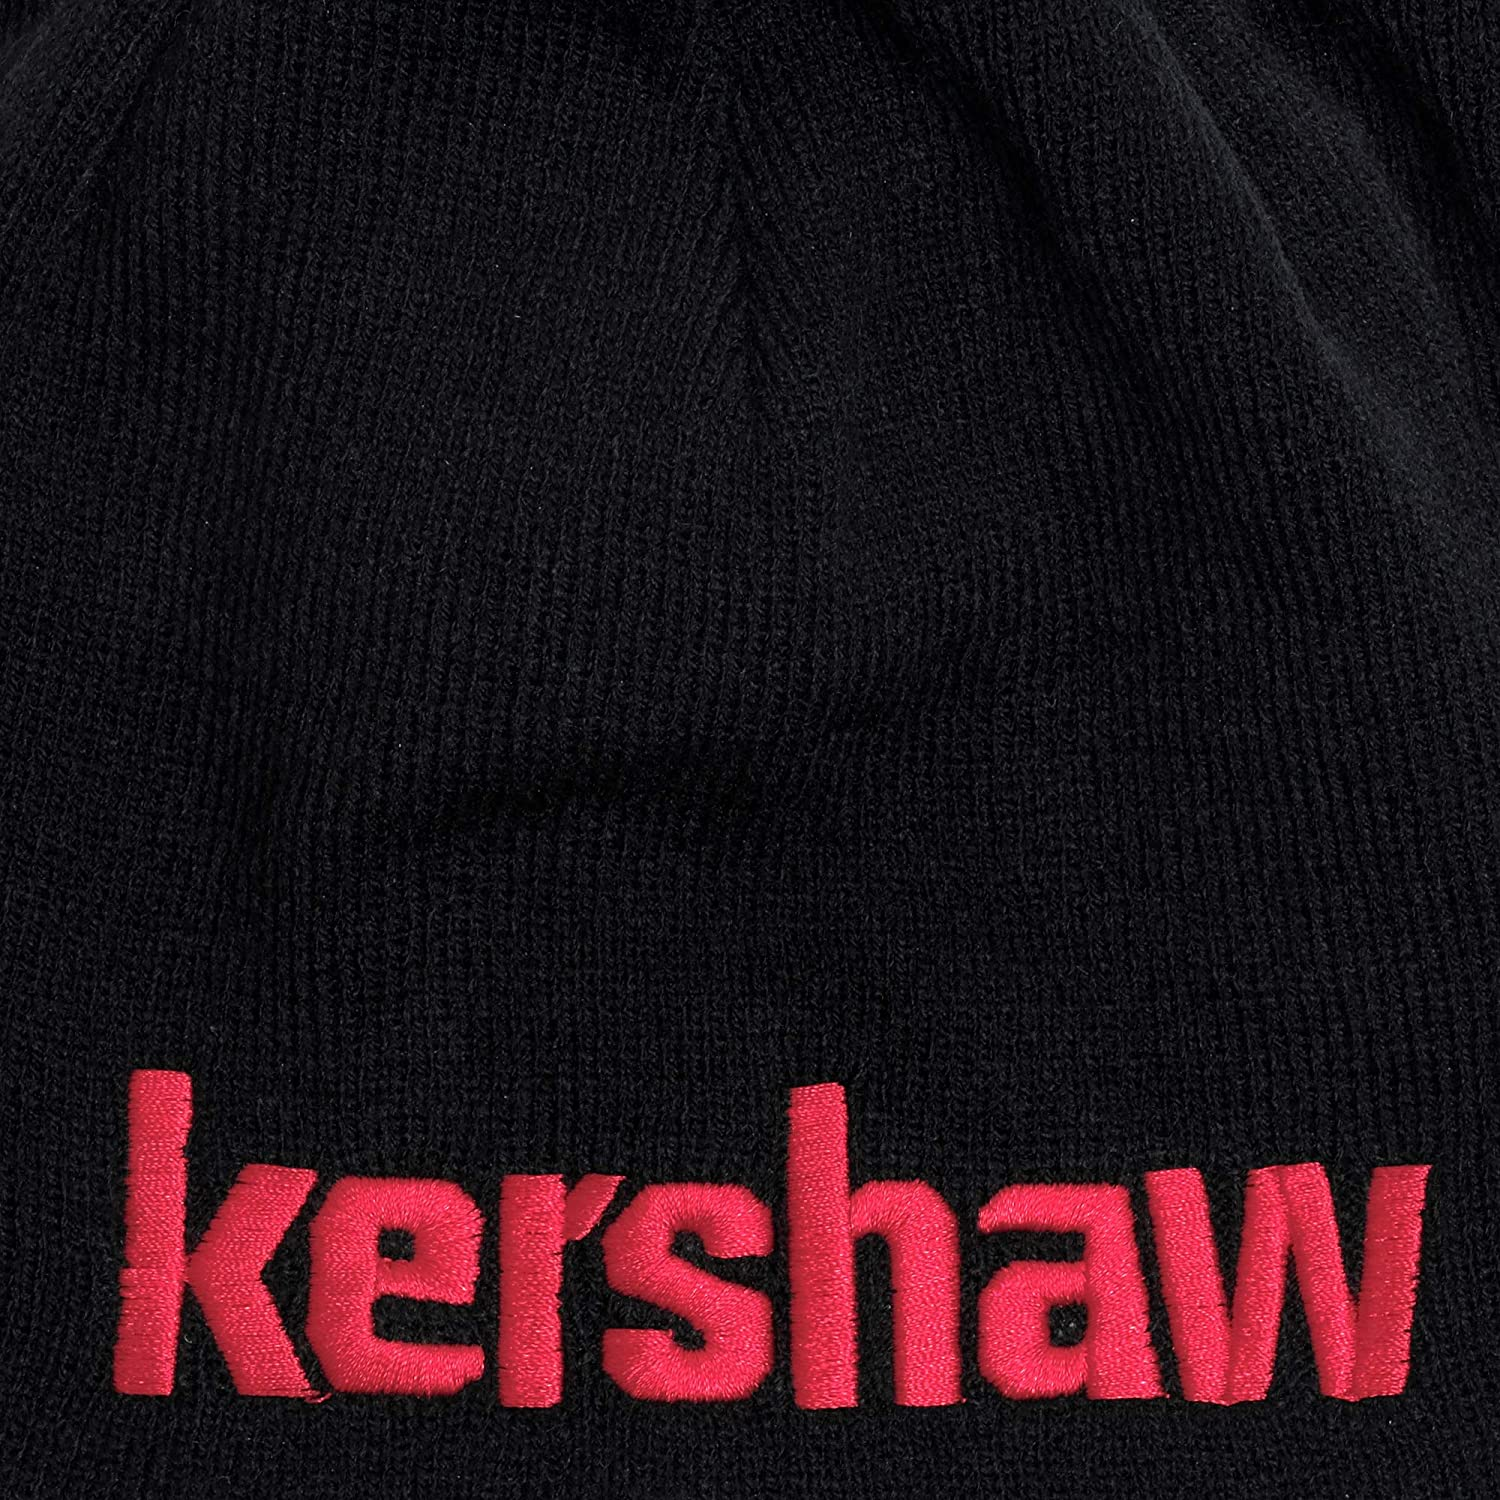 ; Made of Comfortable 100/% Knitted Acrylic Material; Reversible Black Exterior with Red Knit-in Logo and Solid Red Interior; One-Size-Fits-Most; Washable BEANIEKER18 Kershaw Two-in-One Beanie